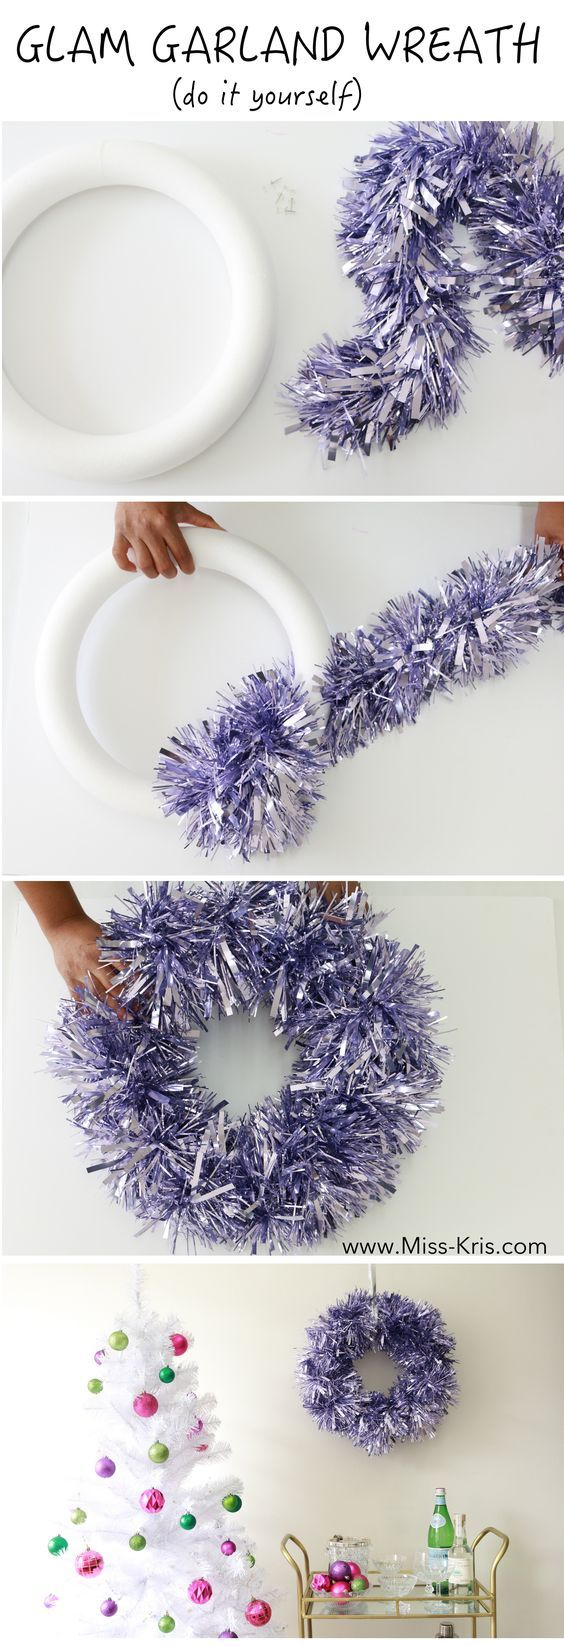 33 gorgeous diy christmas wreath ideas to decorate your holiday season diy glam garland wreath solutioingenieria Images